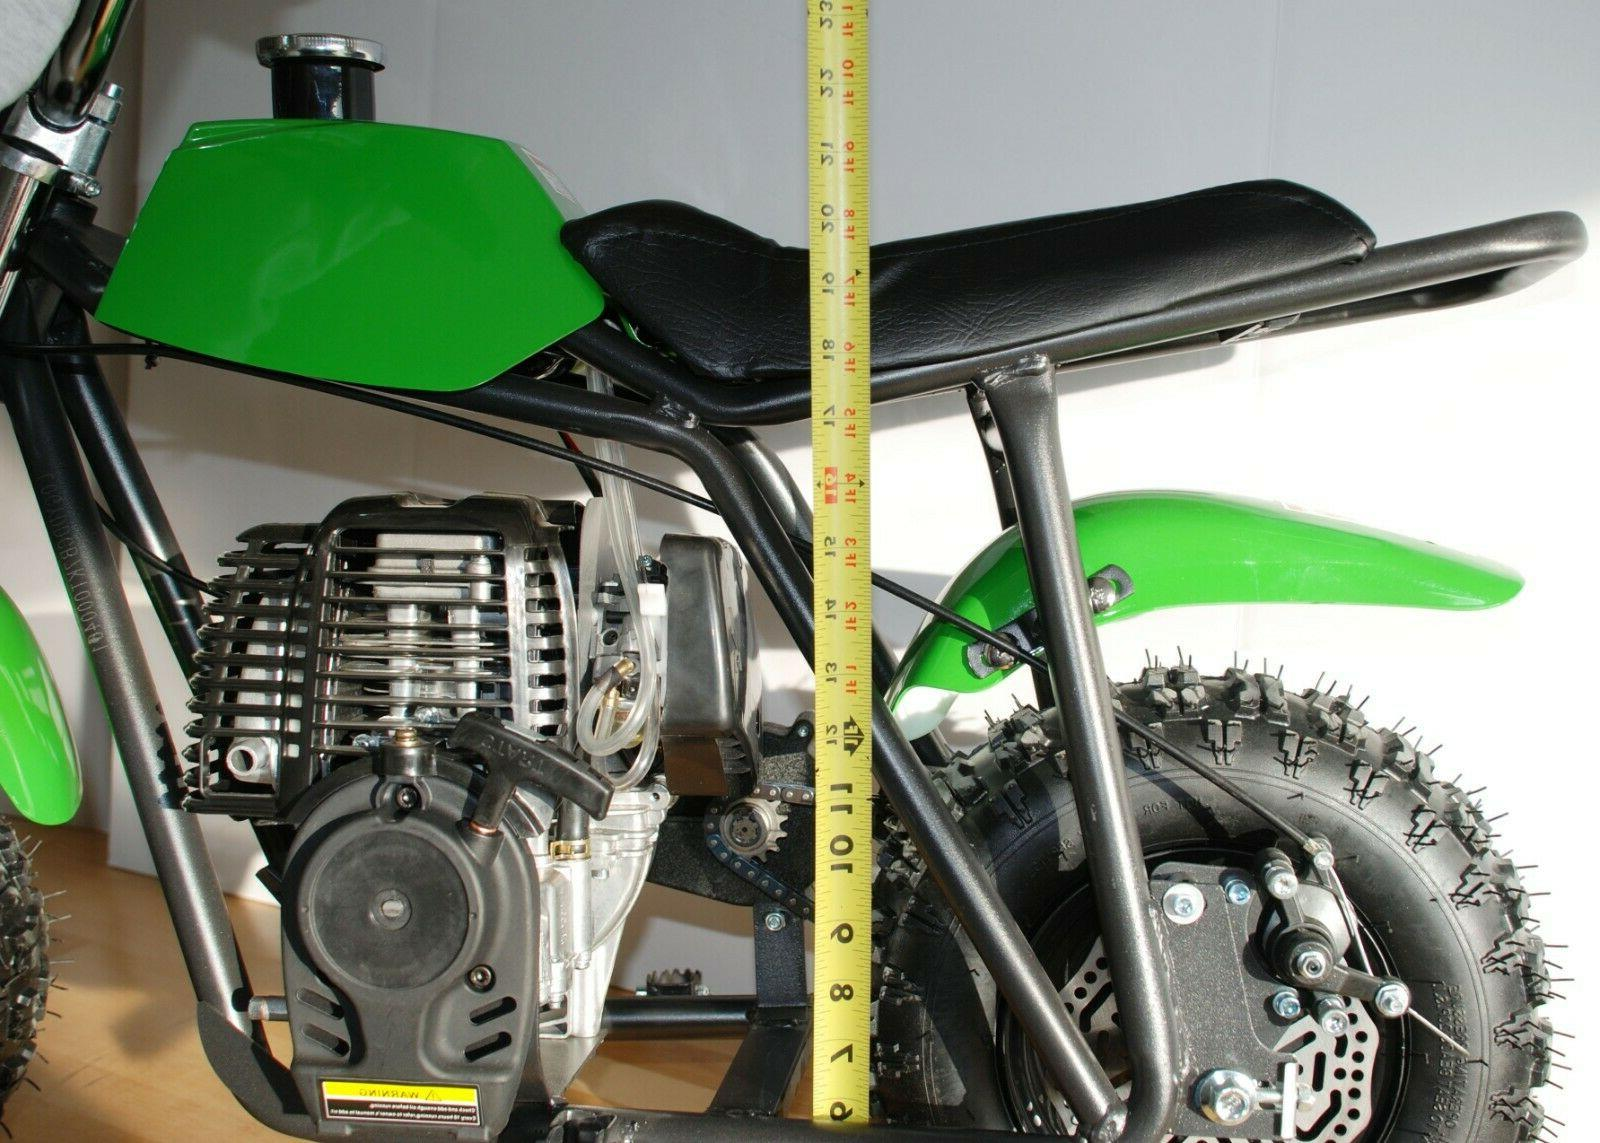 40cc Gas Bike - off-road tires, old